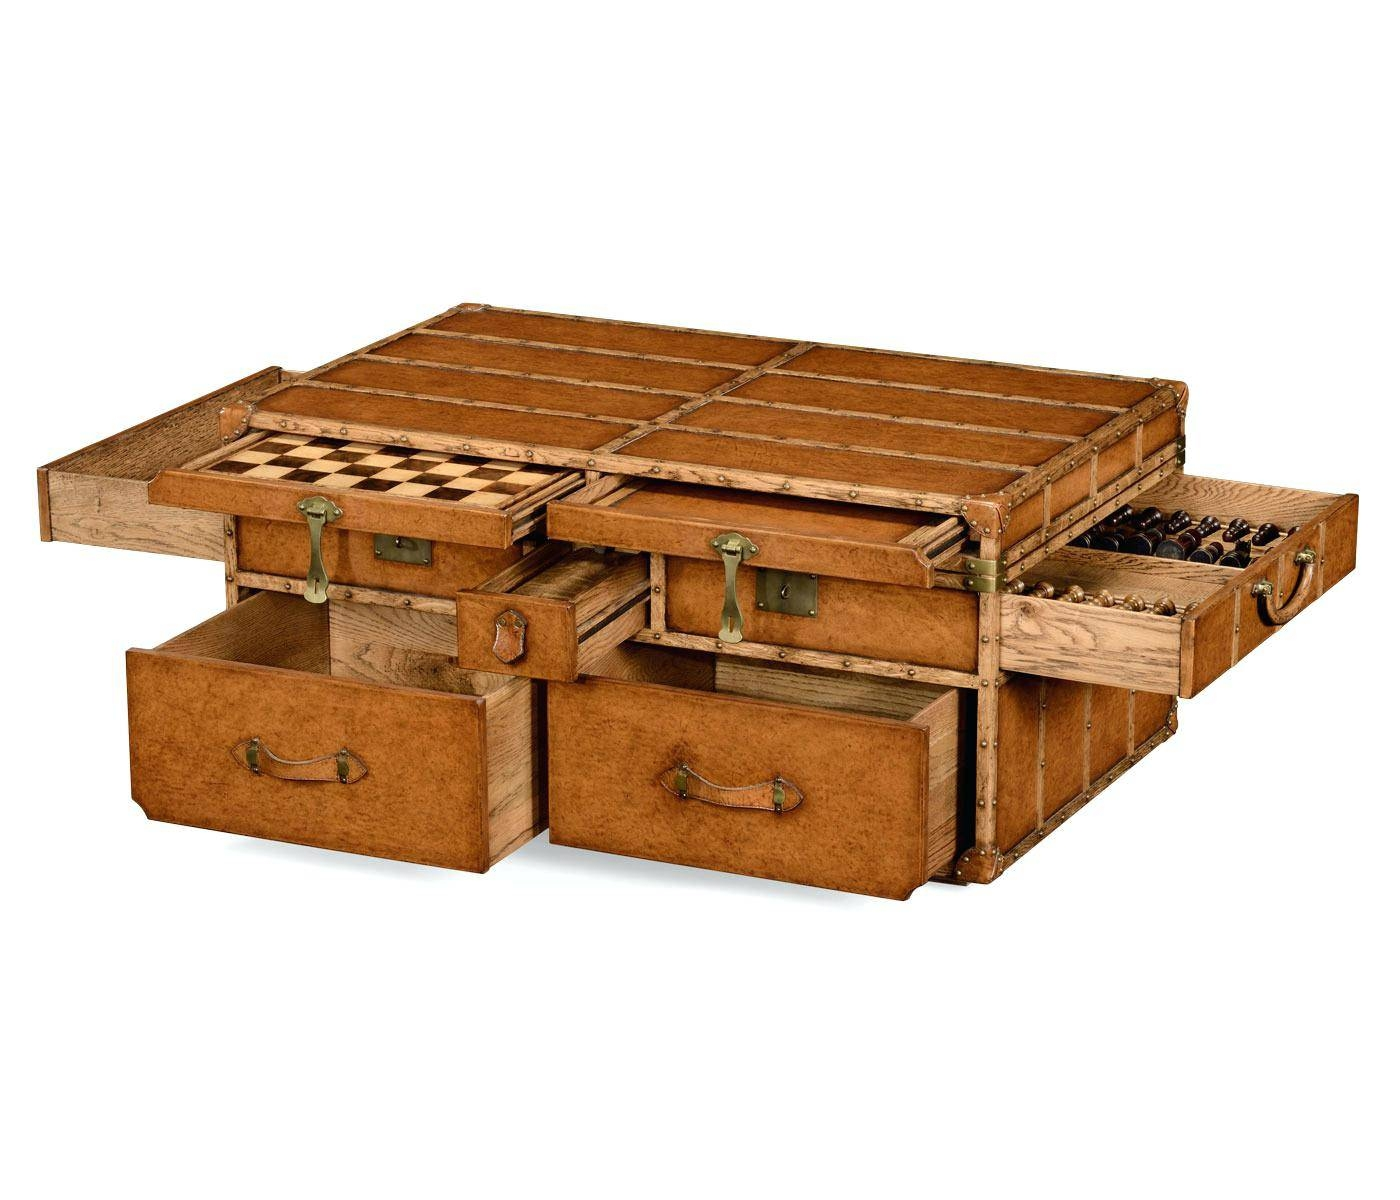 Coffee Table ~ Large Wooden Chest Trunk Rustic Vintage Storage throughout Blanket Box Coffee Tables (Image 11 of 30)